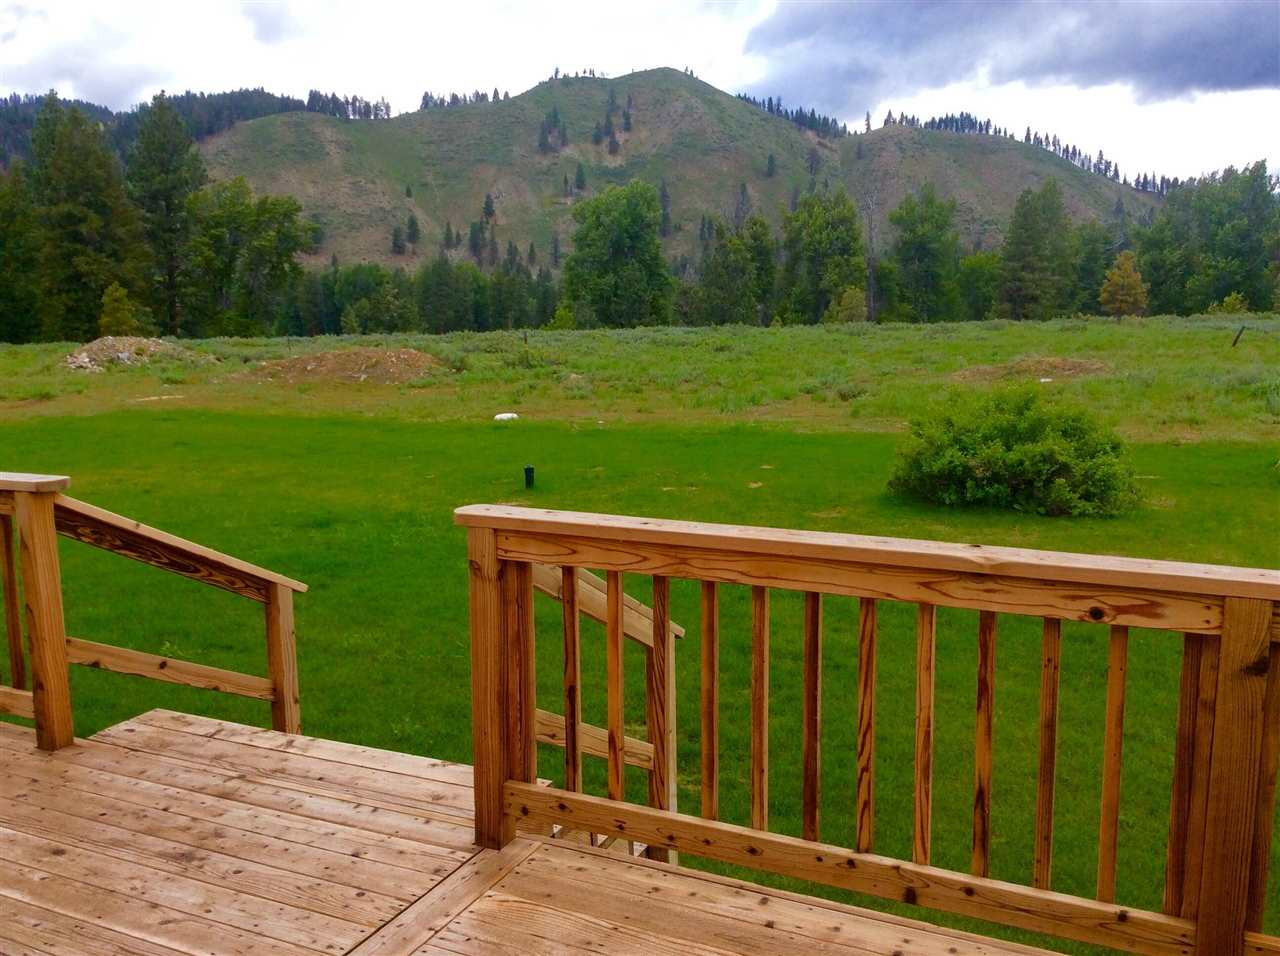 Single Family Home for Sale at 1446 Pine Creek Road 1446 Pine Creek Road Featherville, Idaho 83647